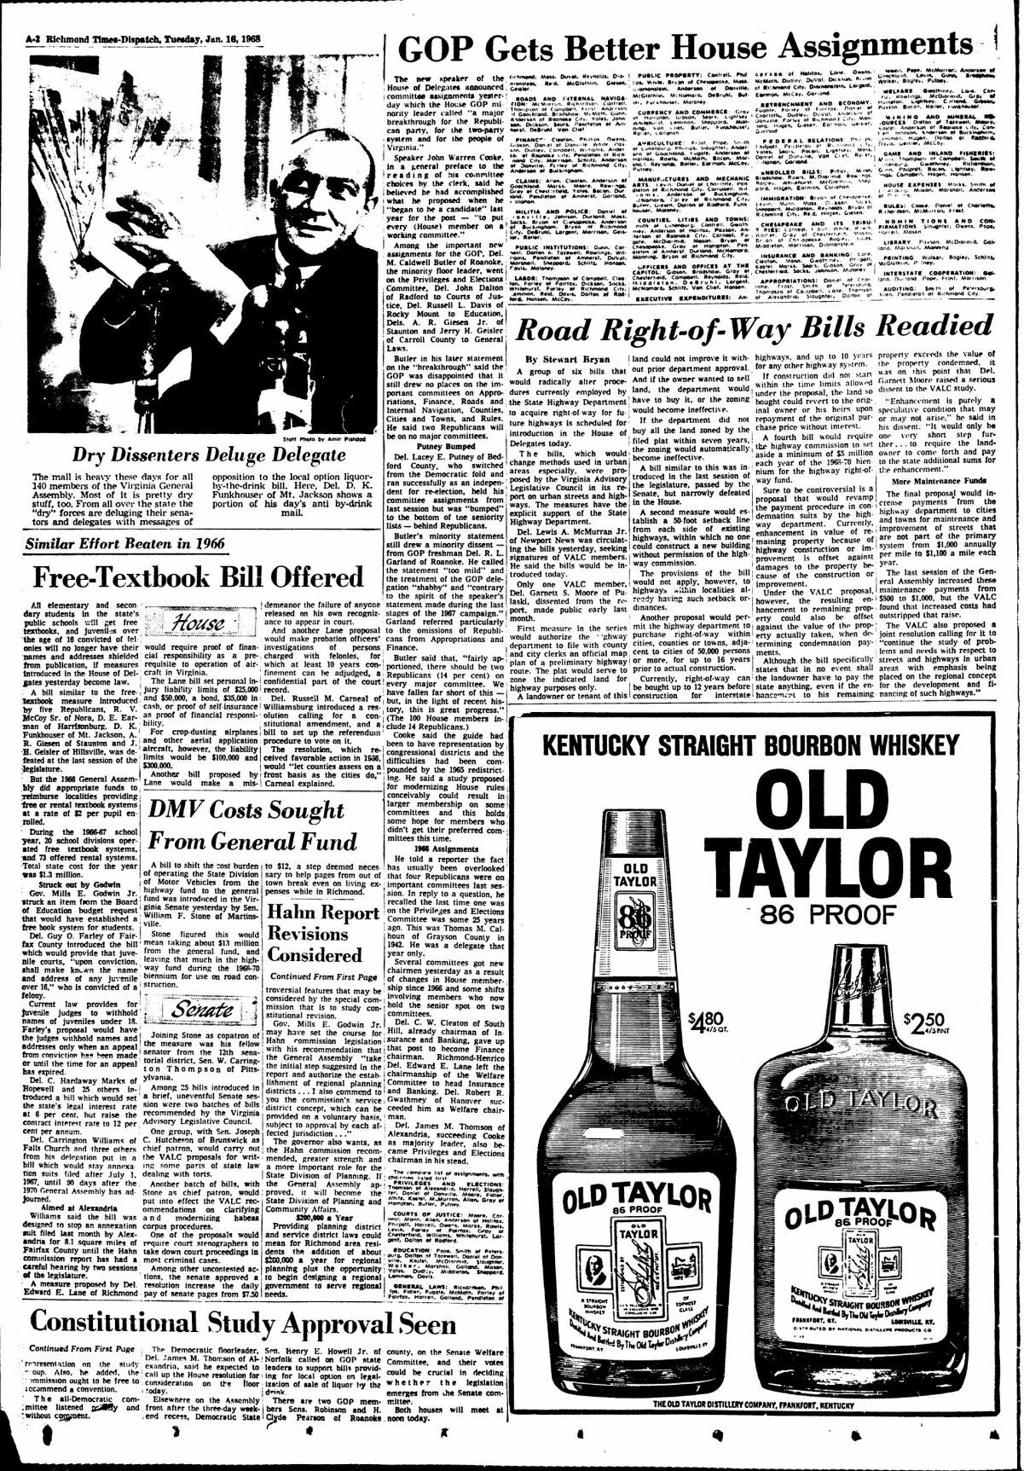 From the archives: 50 years ago, liquor by the drink led a